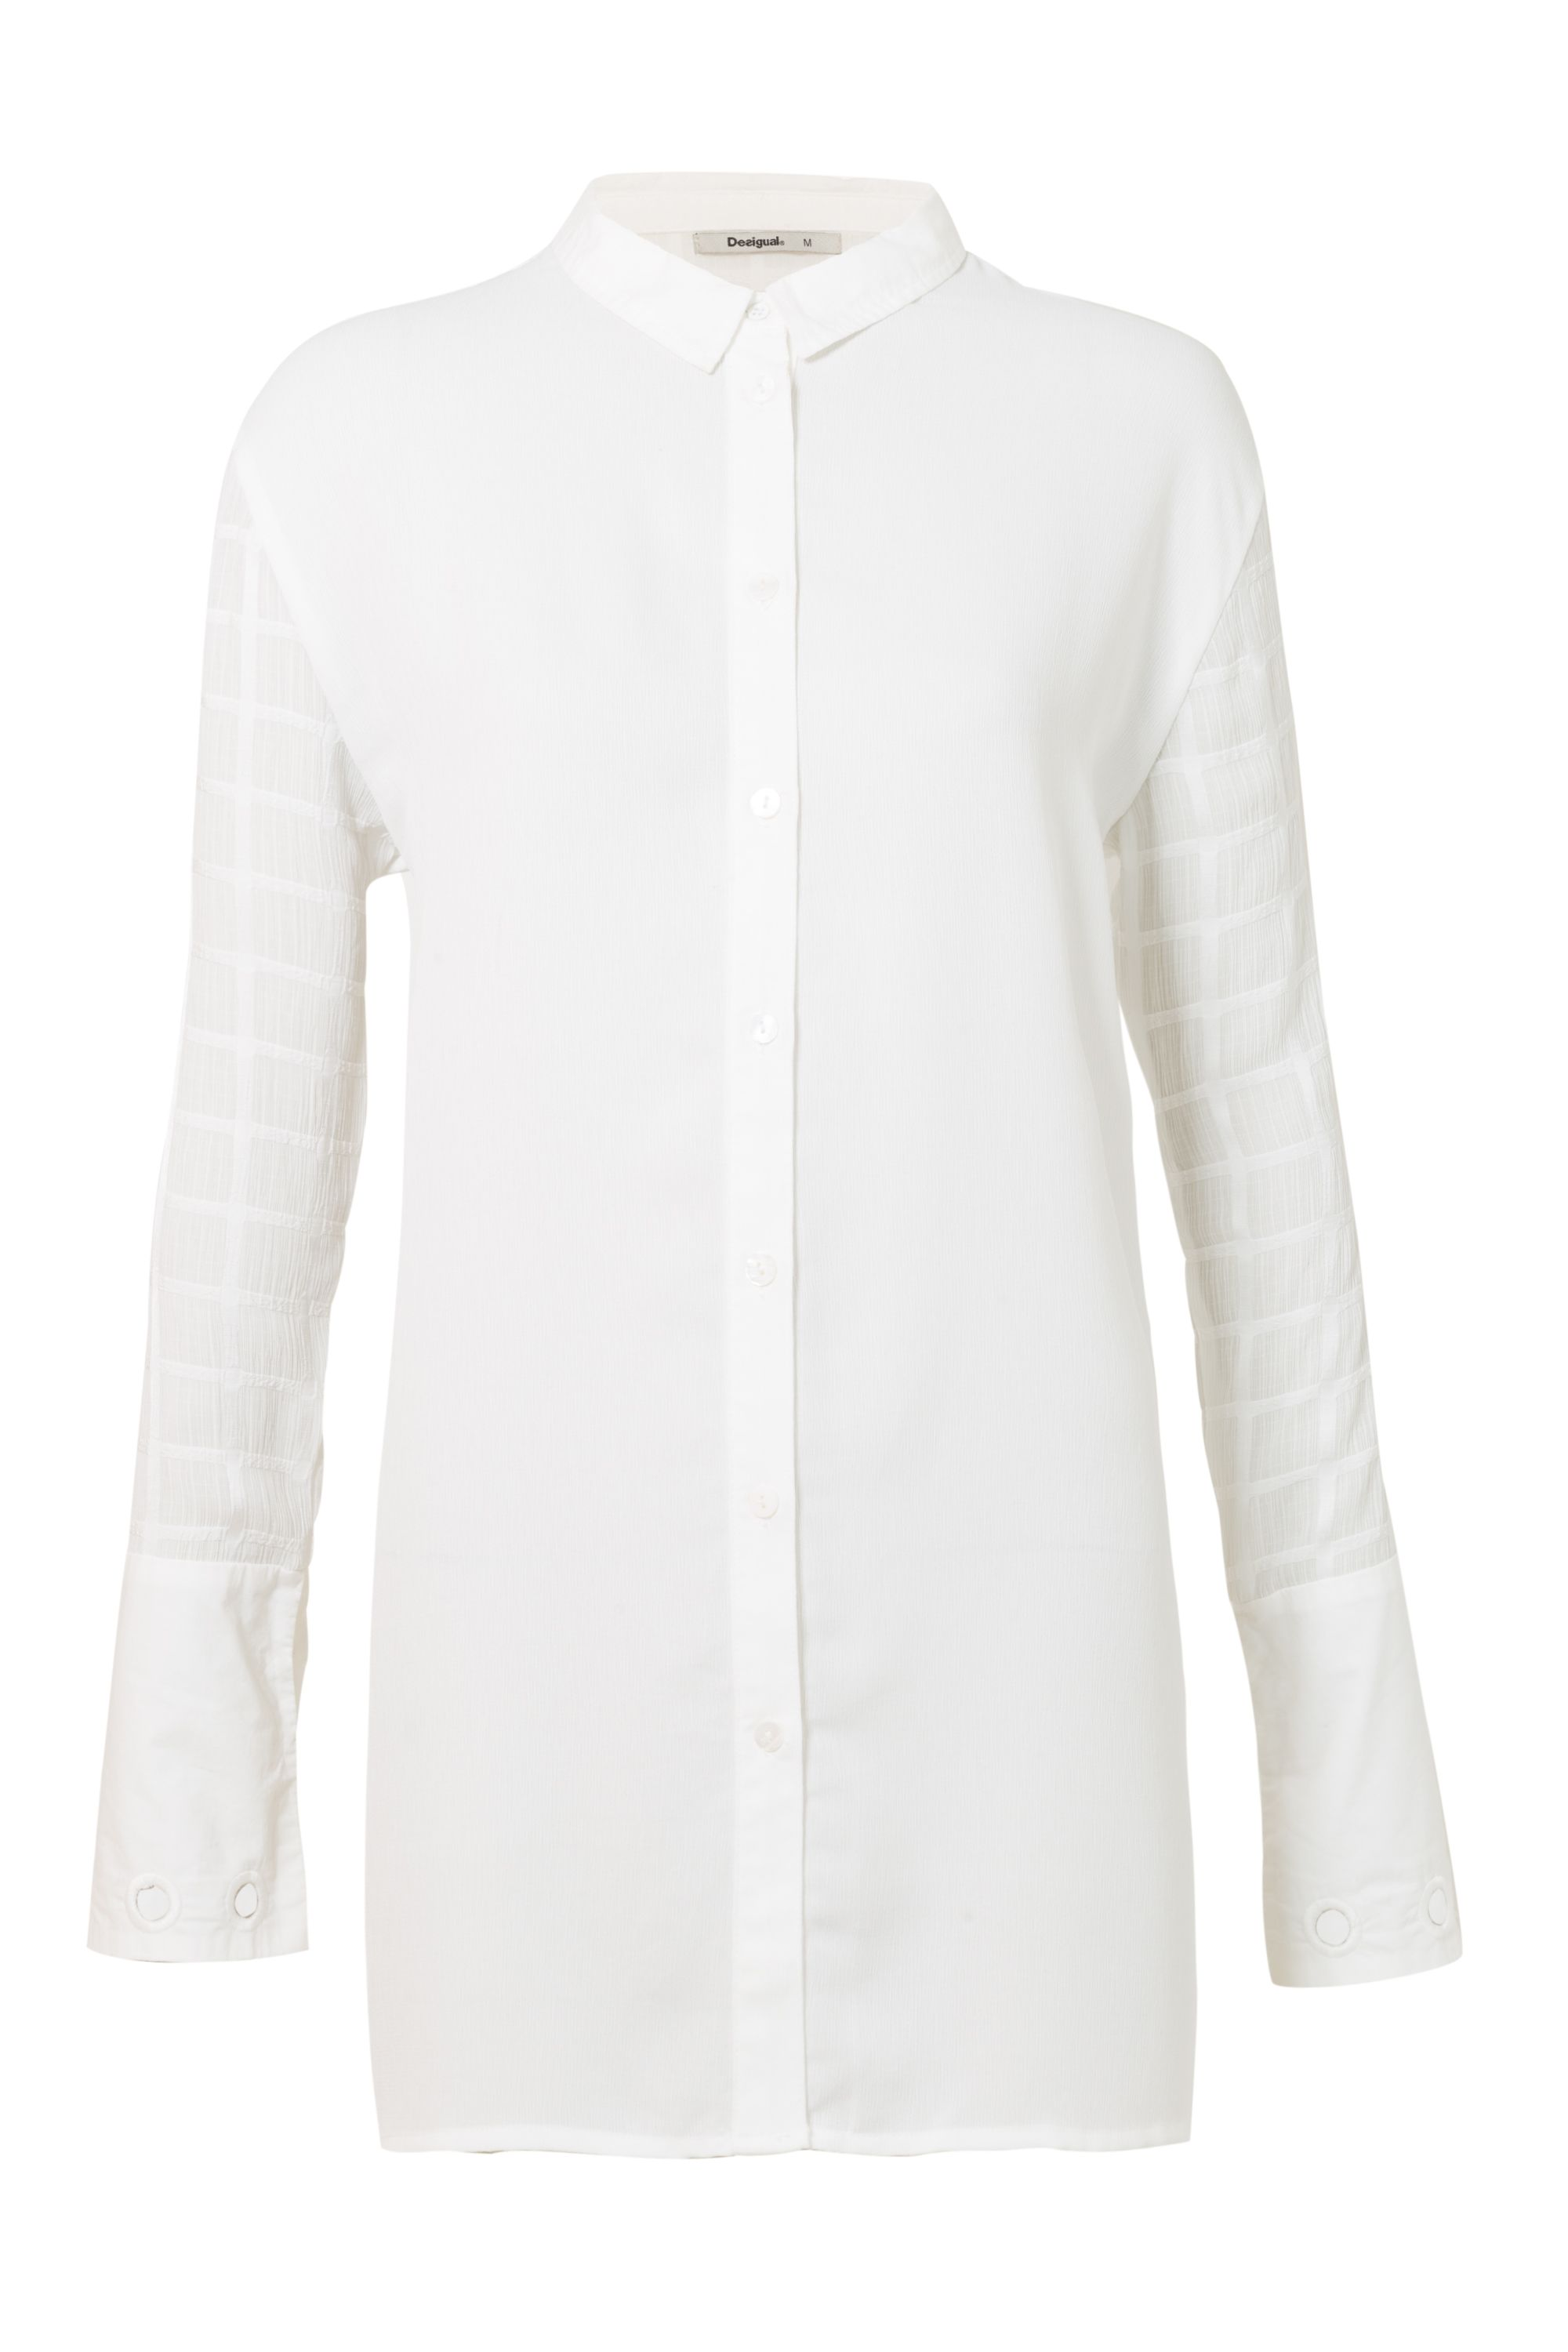 Desigual You Are Shirt, White